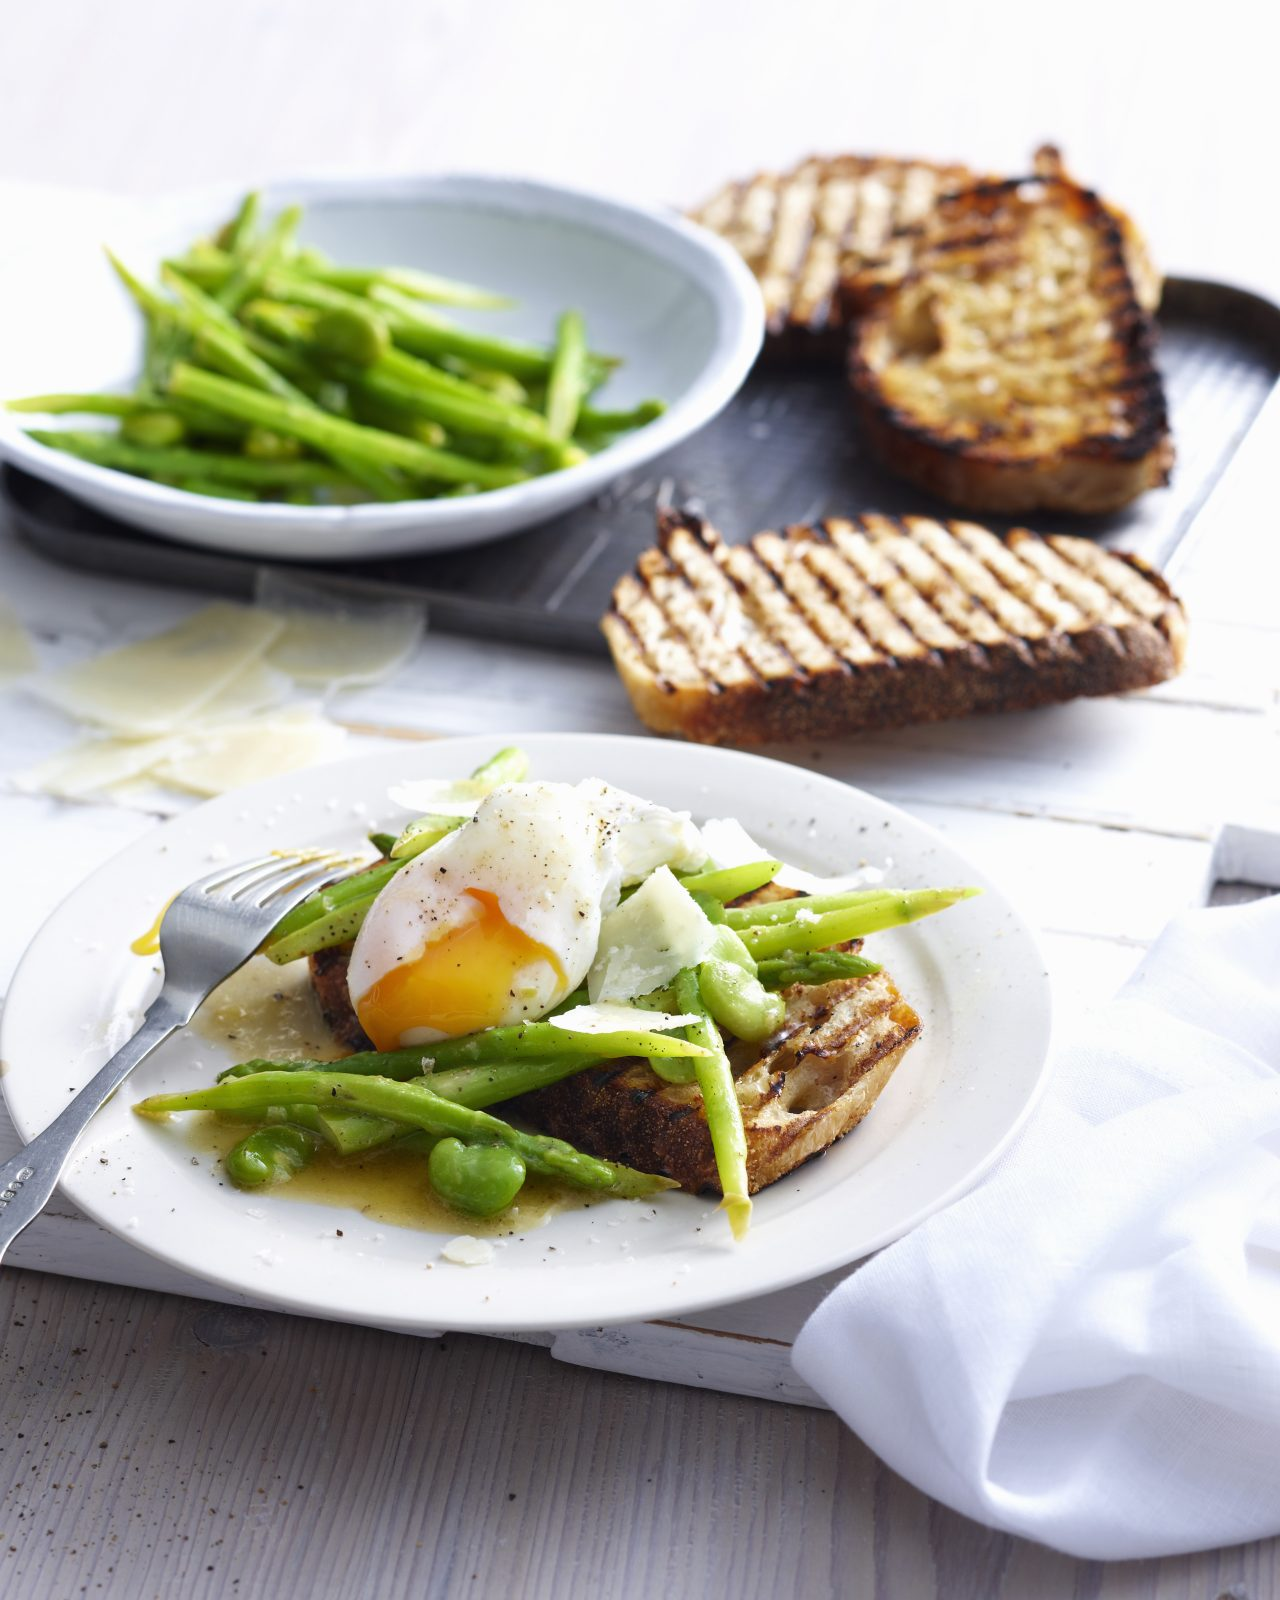 Enjoy a classic Australian breakfast at one of Bathurst's many cafes. Image: Getty Images